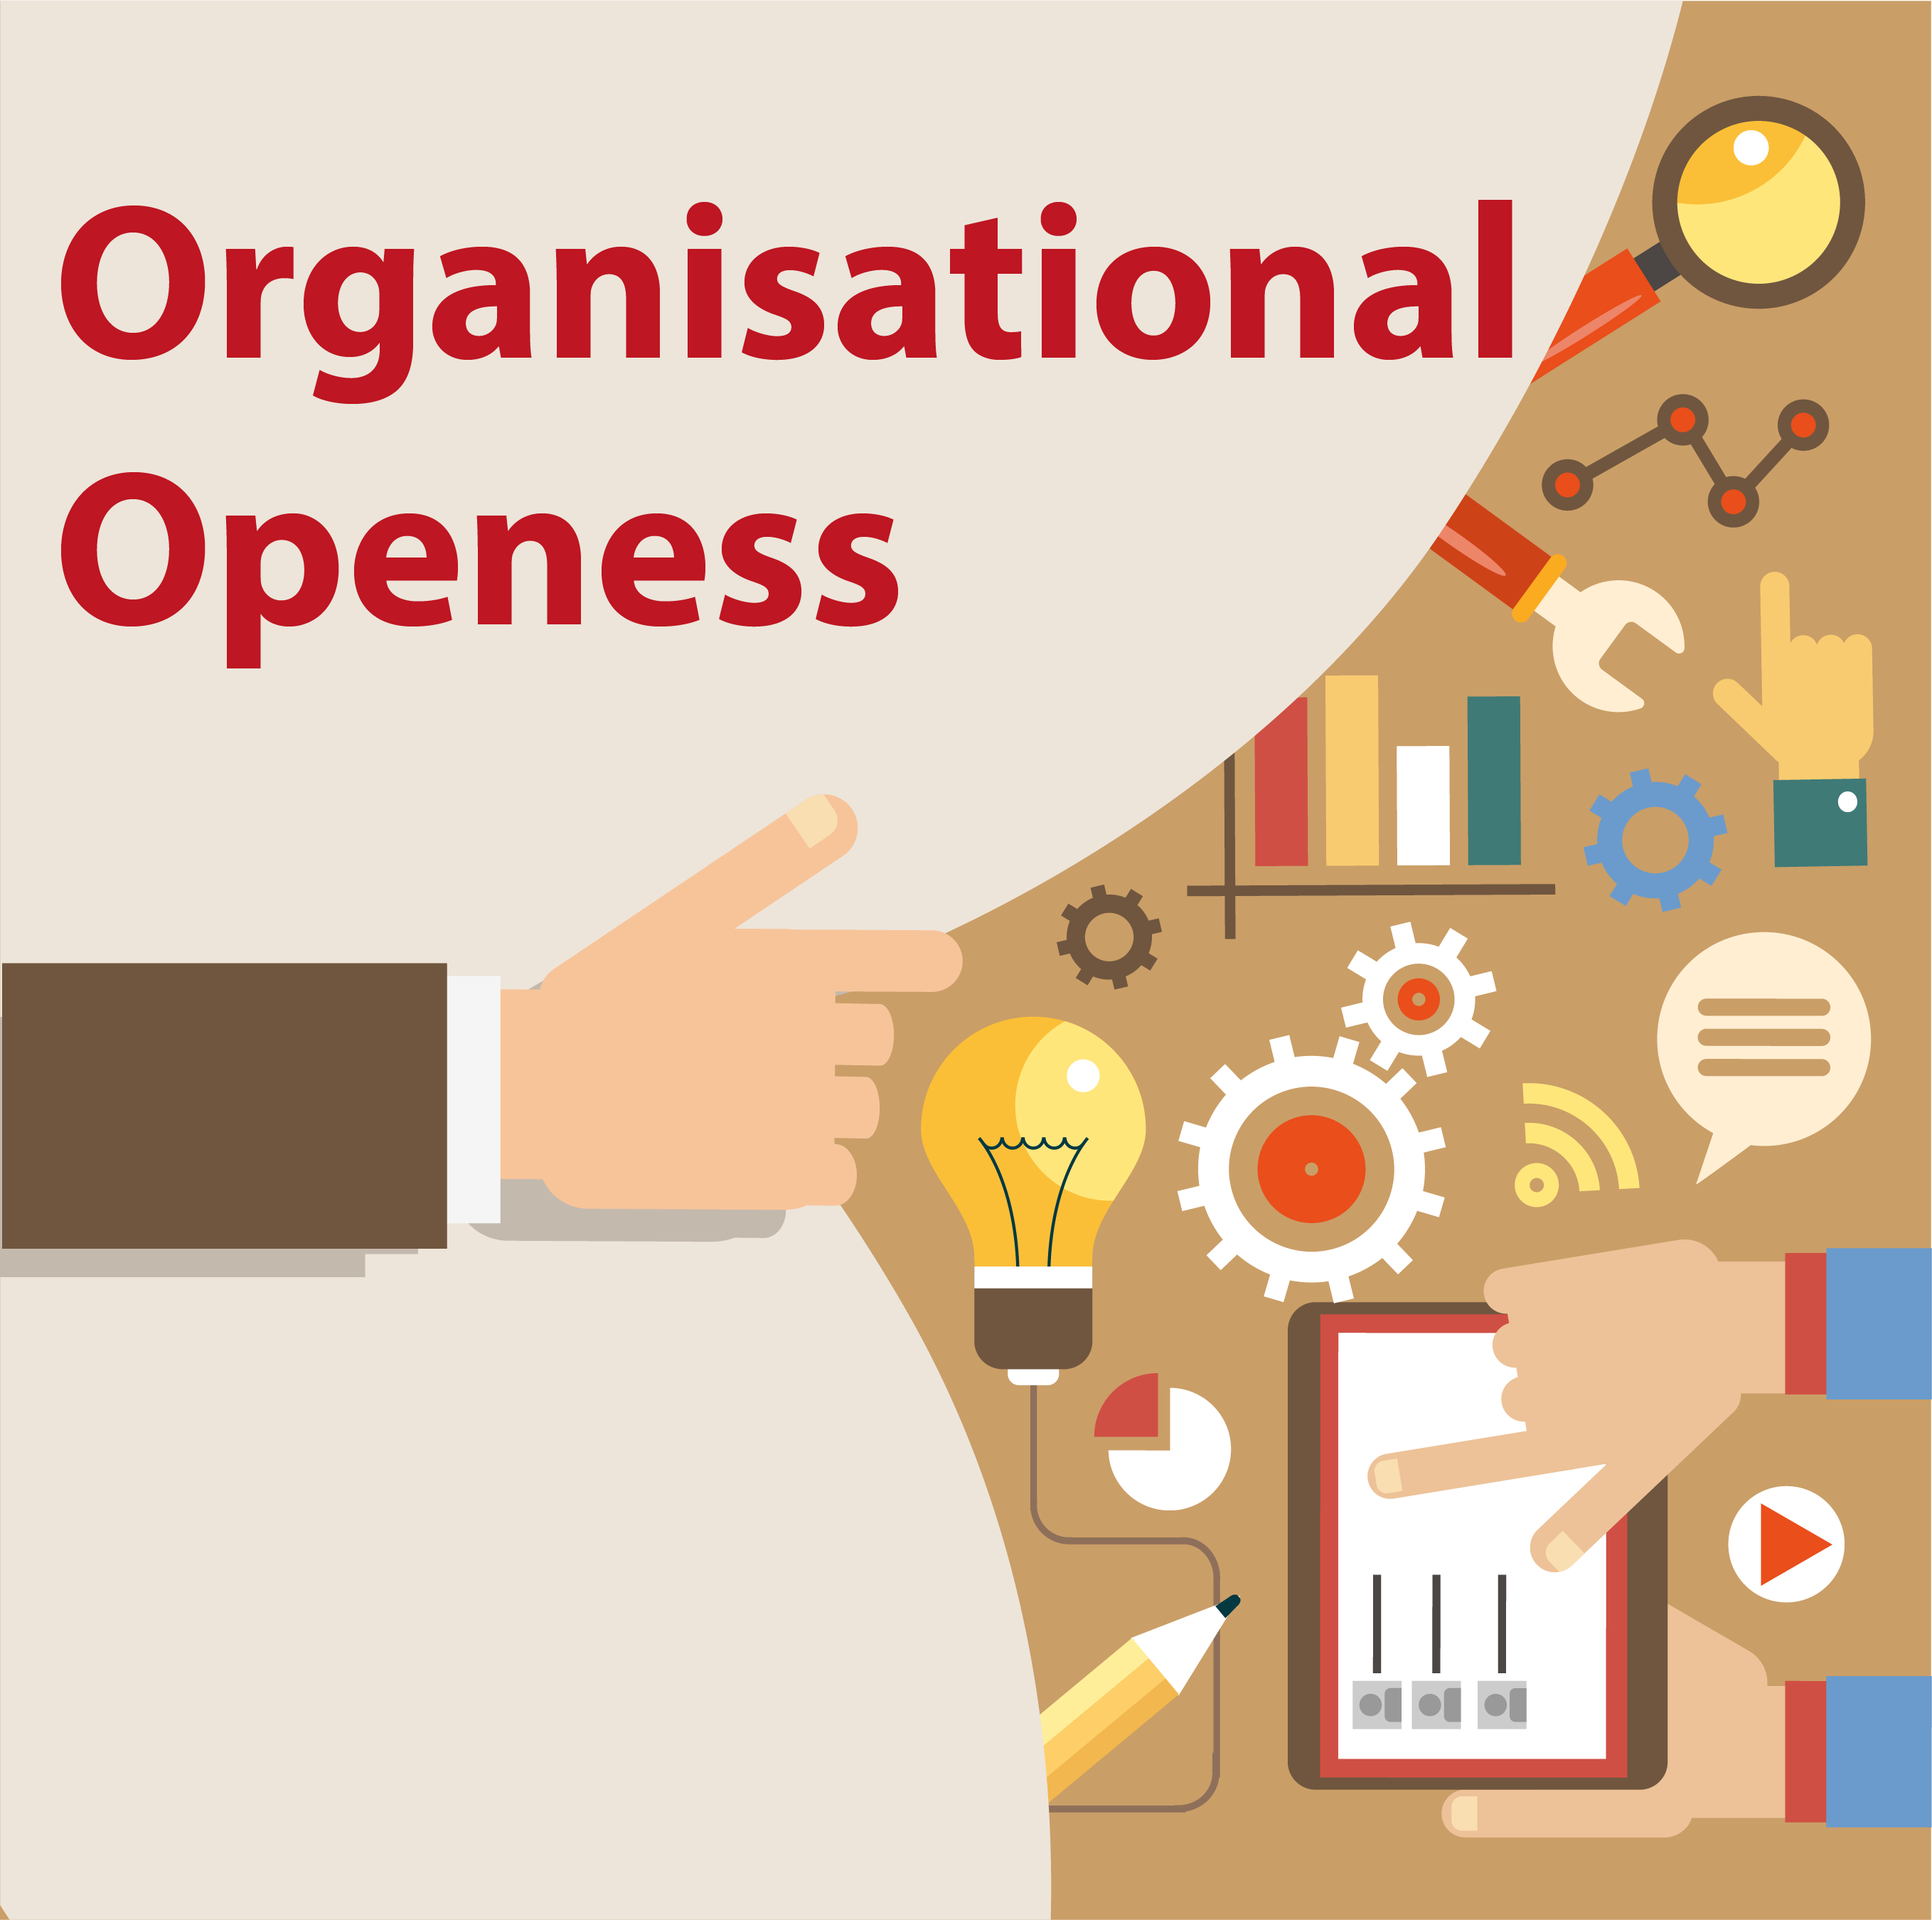 organisational openness